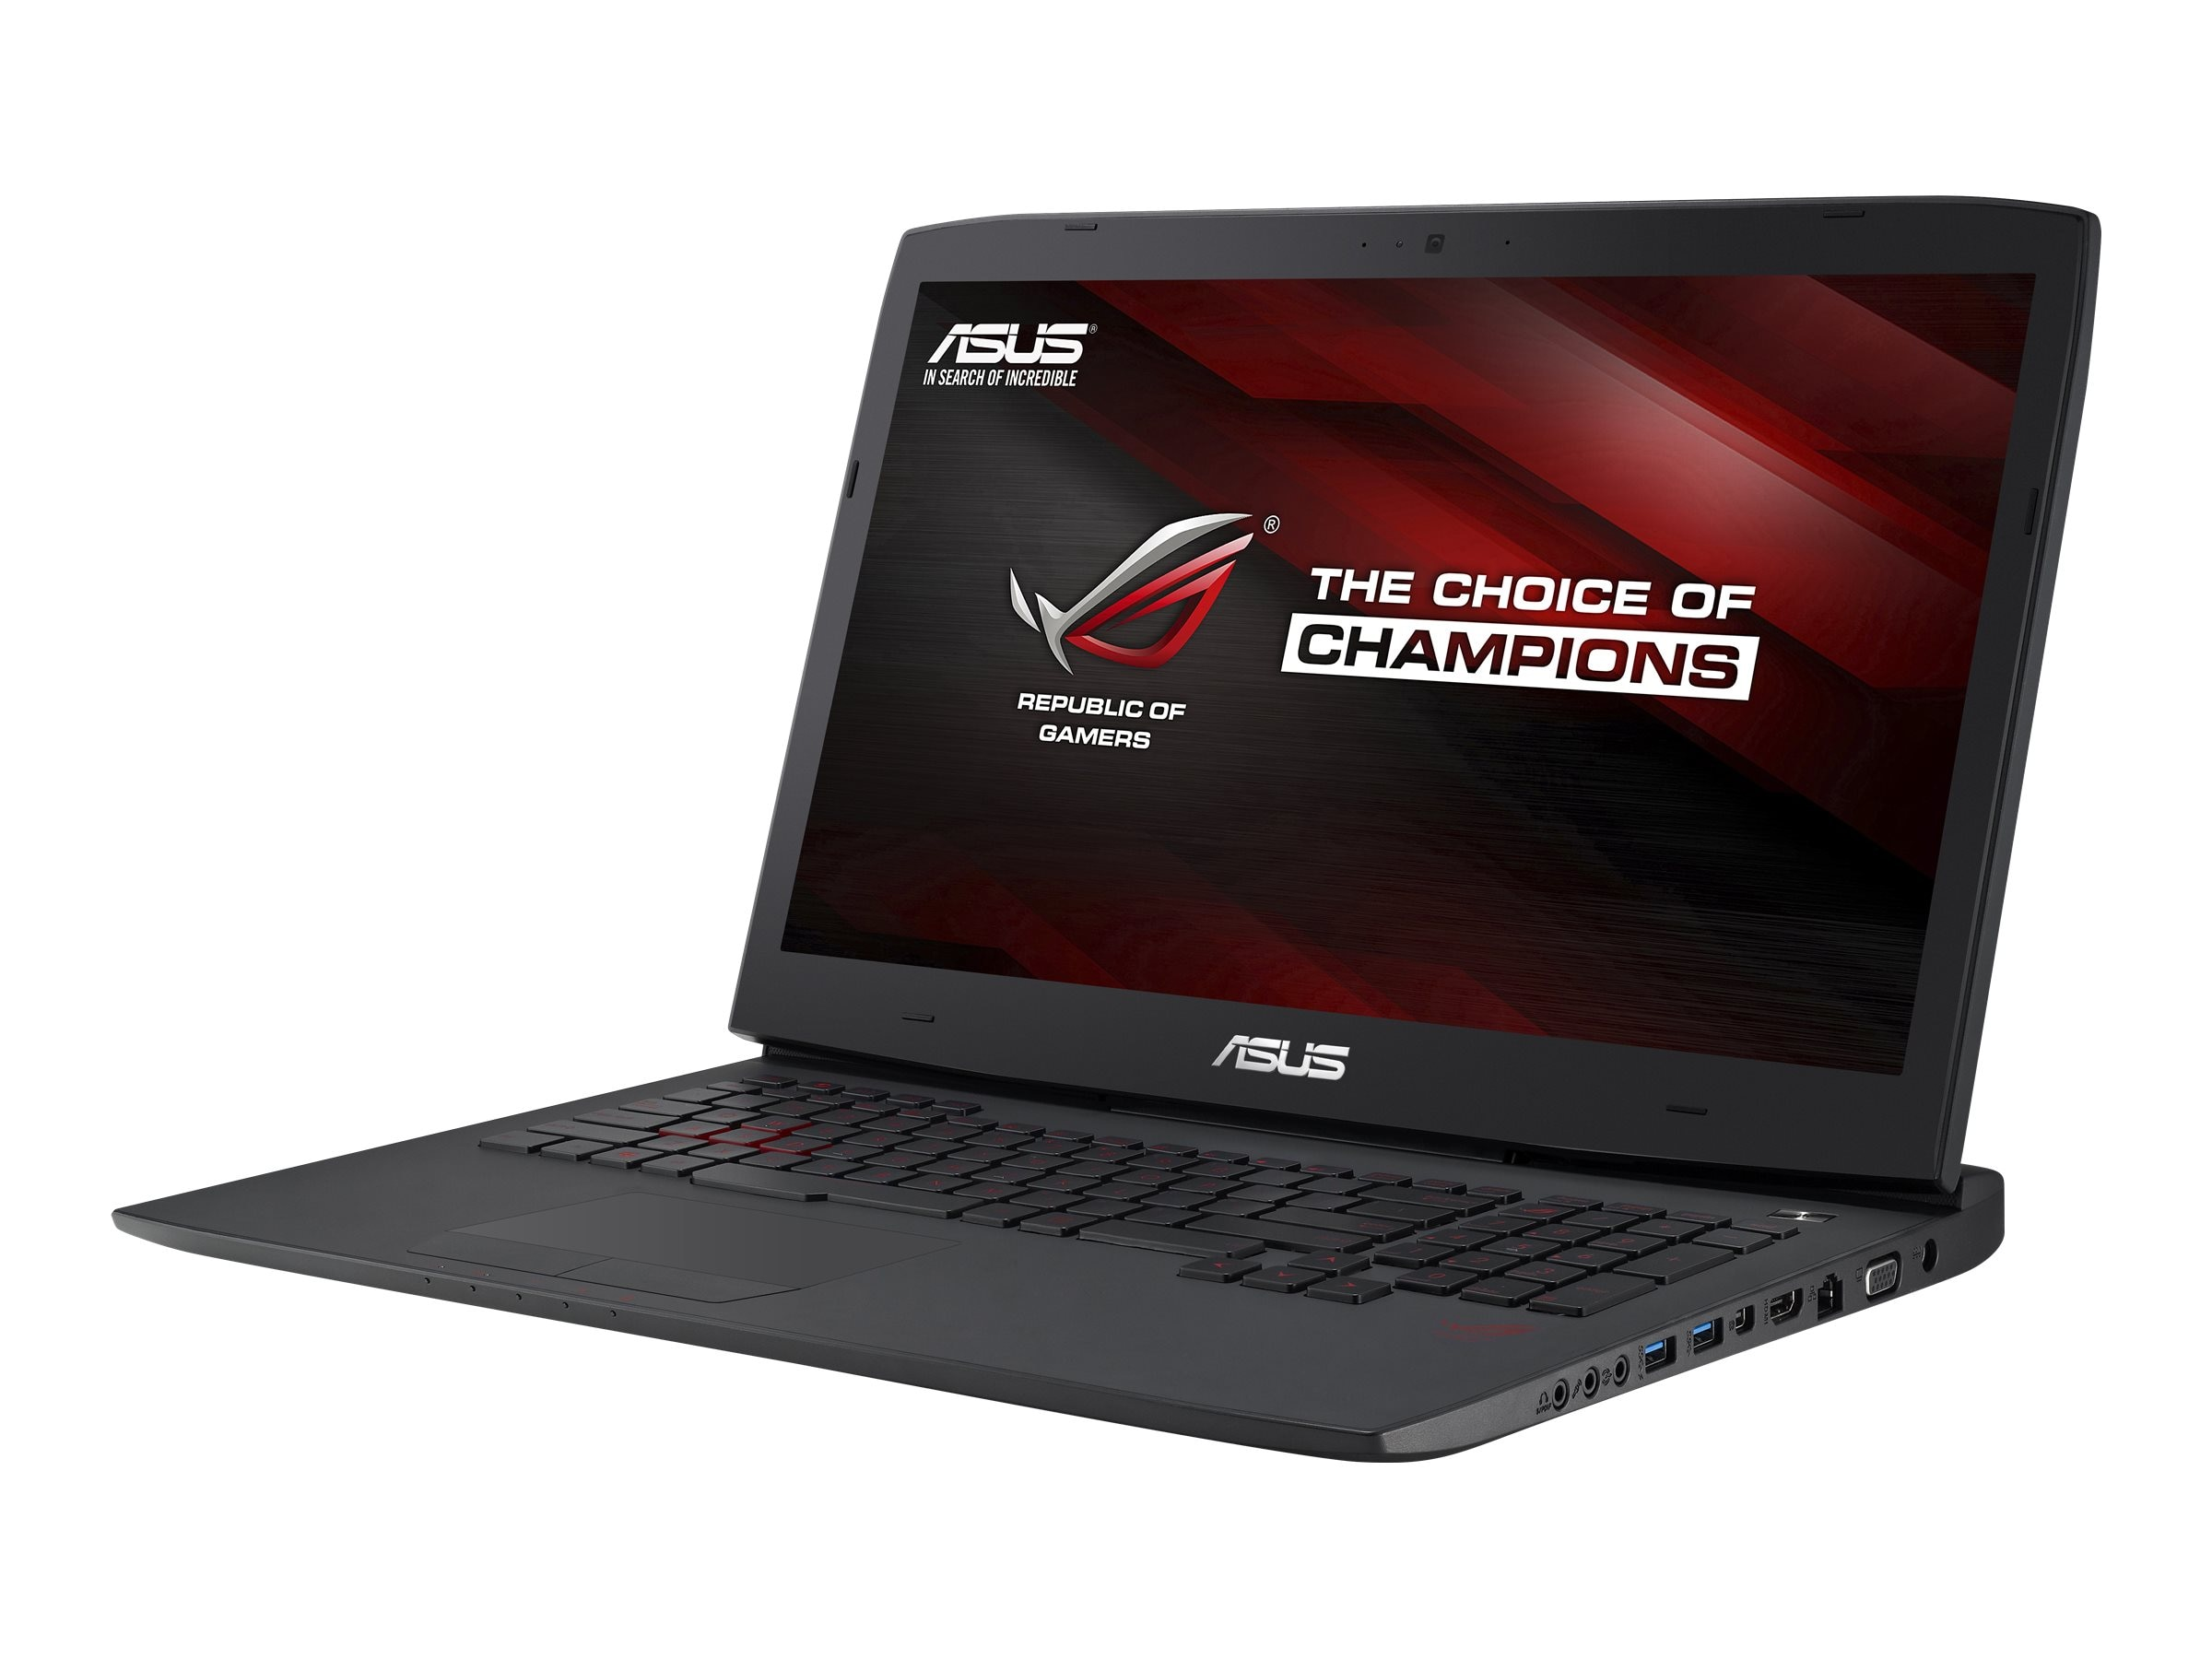 Asus G751JY-VS71(WX) Core i7-4710HQ 2.6GHz 16GB 1TB DVD-RW BT 17.3 W10